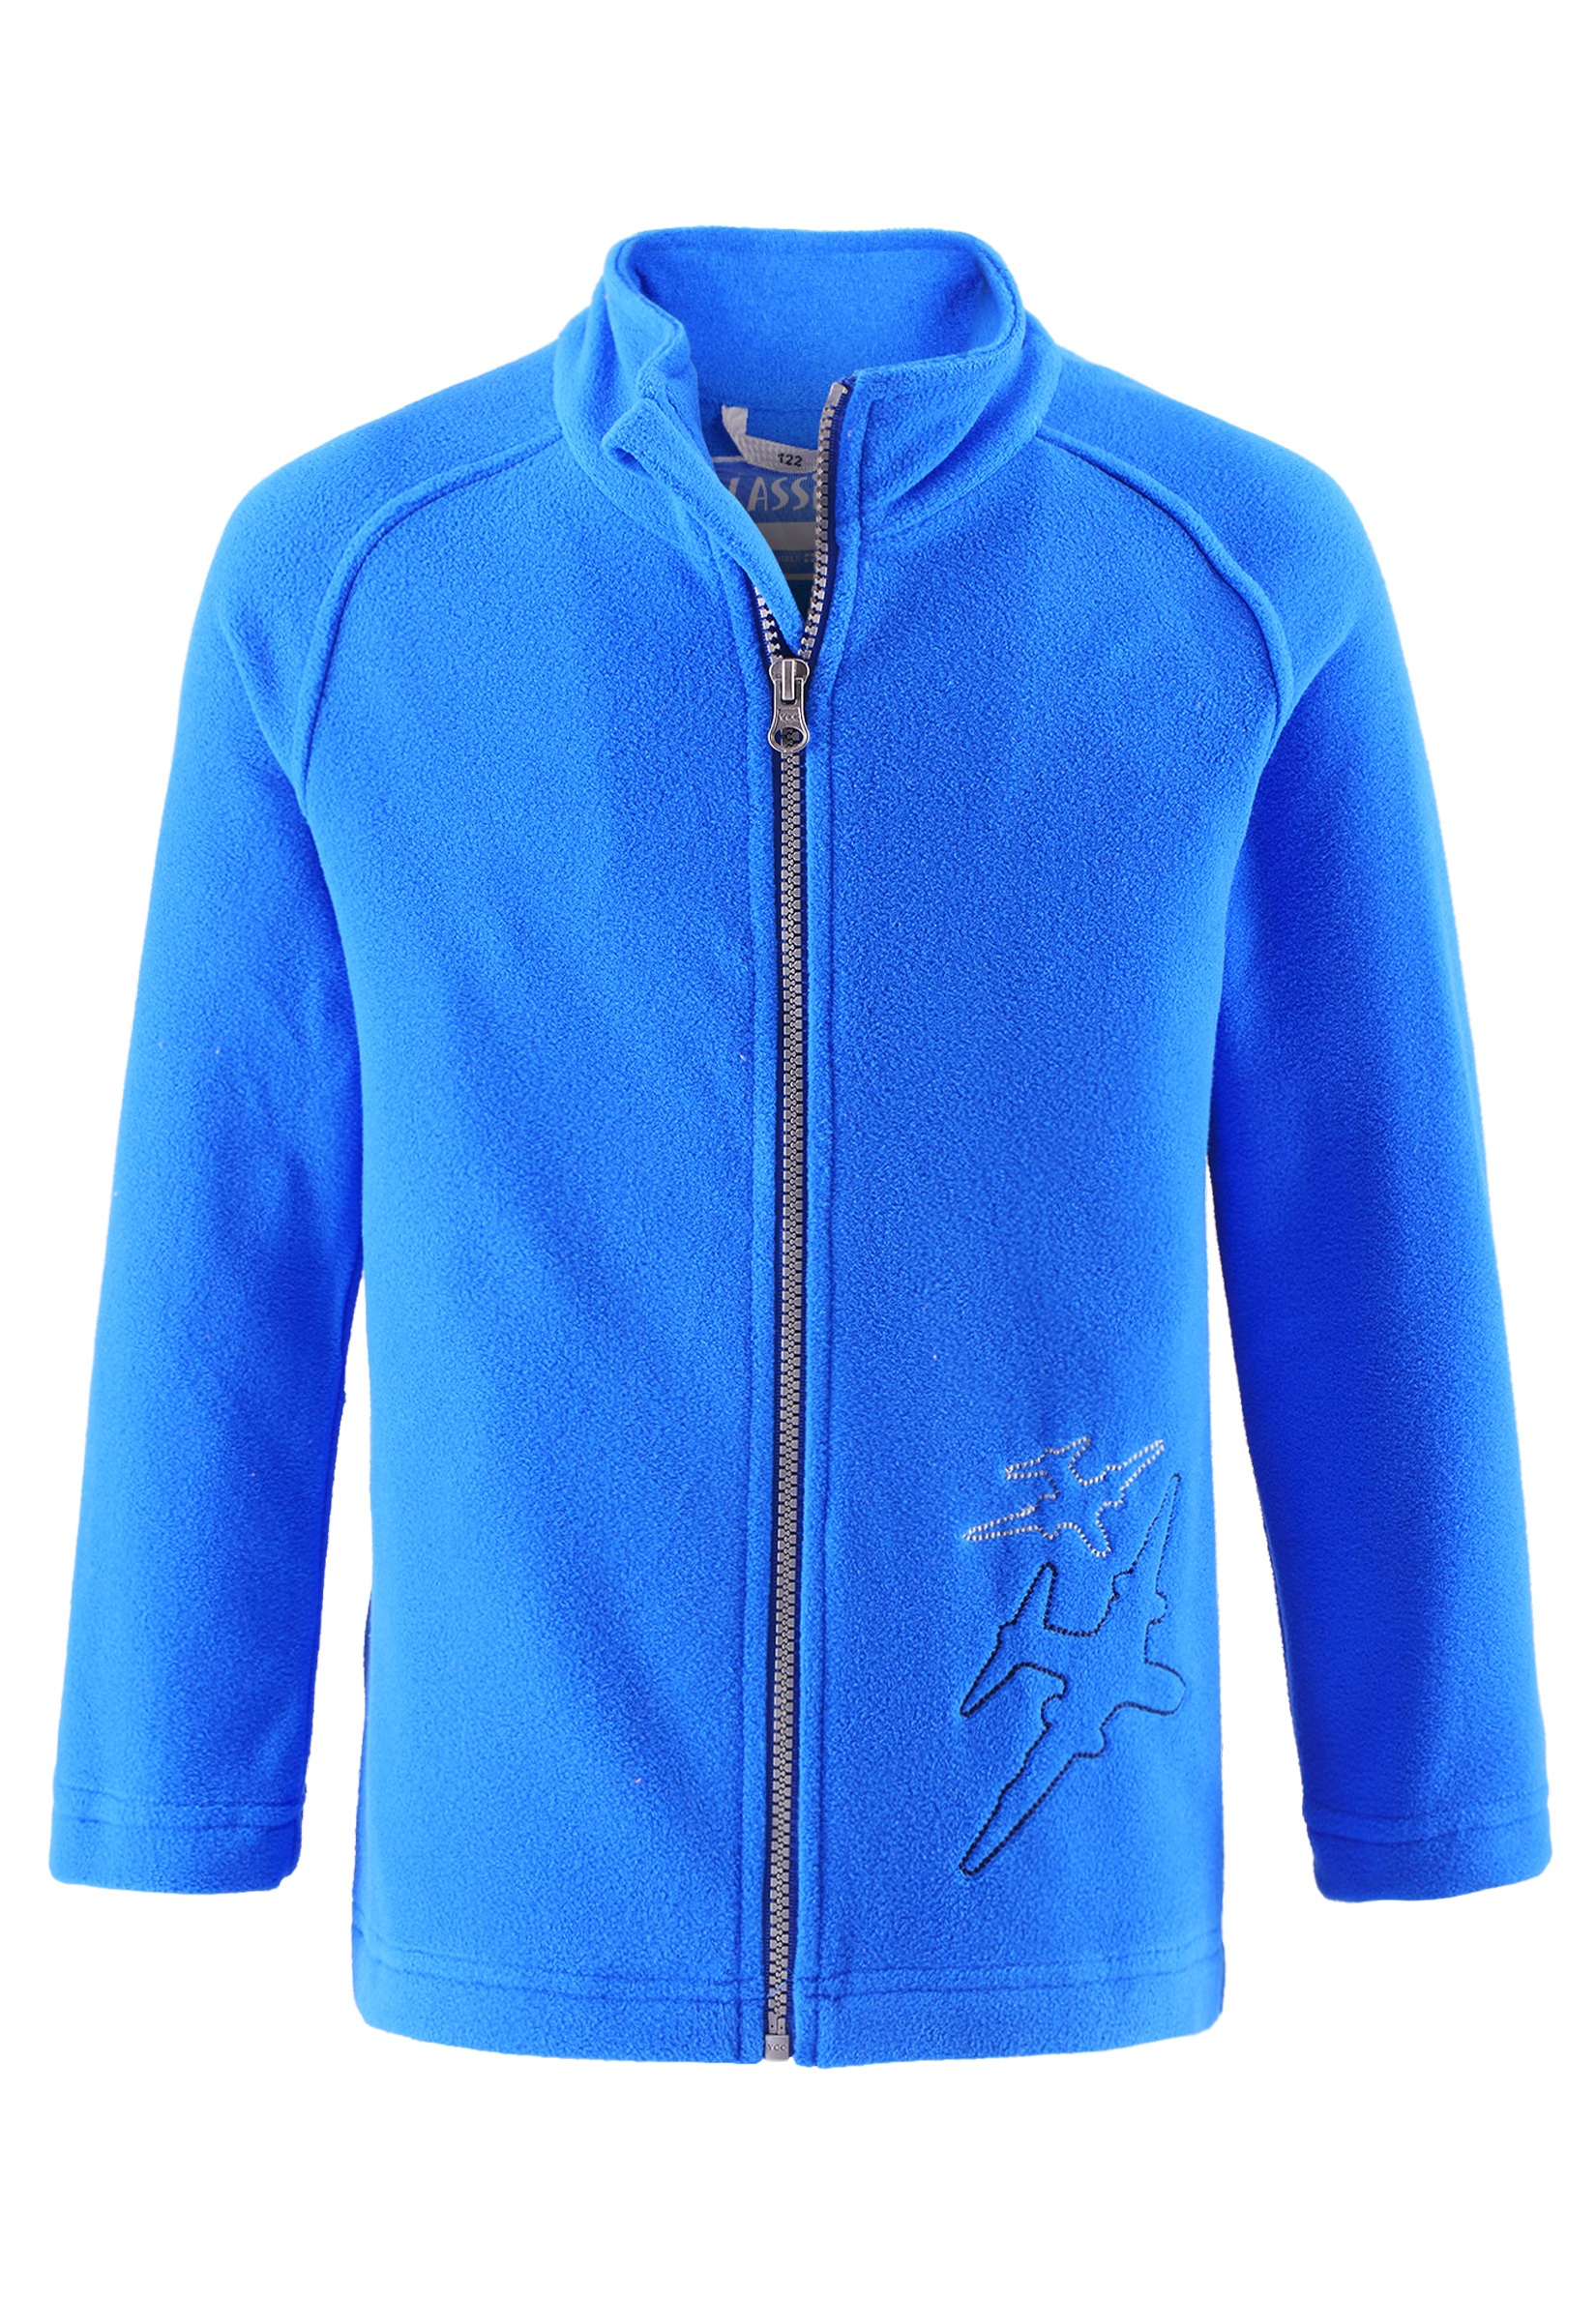 Fleece jacket blue<br><br>Возраст от: None<br>Возраст до: None<br>Цвет: синий<br>Сезон: Зима<br>Категория : Lassie<br>Коллекция: General<br>Размер RU: 122